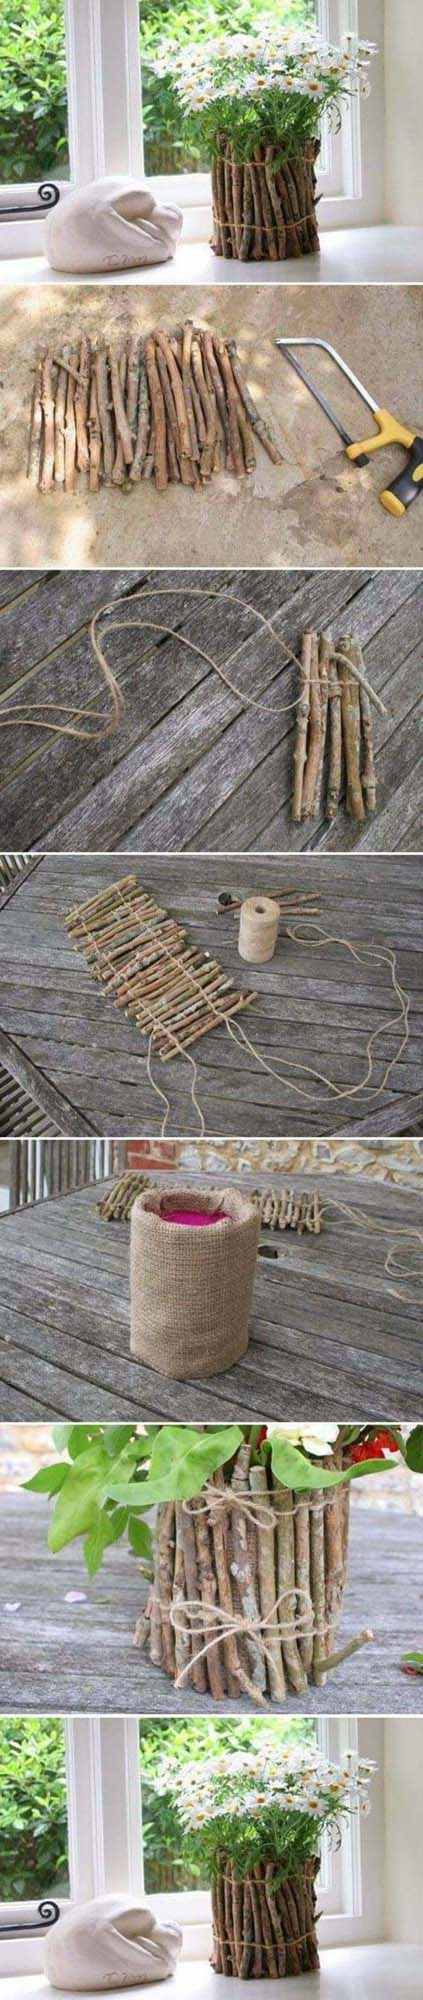 DIY Tree Branches Flower Pot #decor #home #branches #homedecorimage